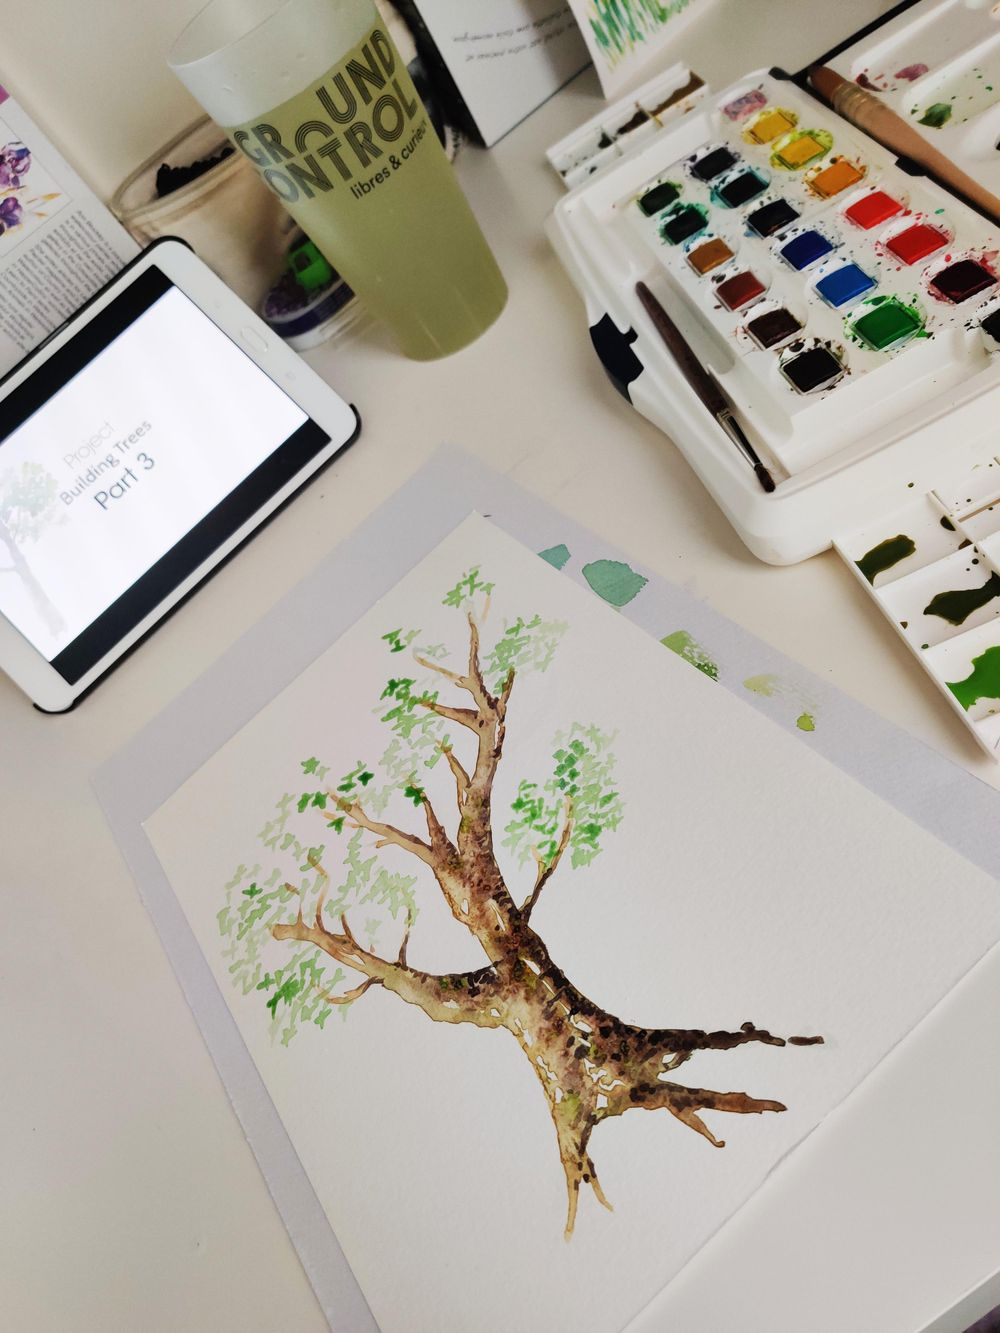 Practice tree : step by step - image 3 - student project